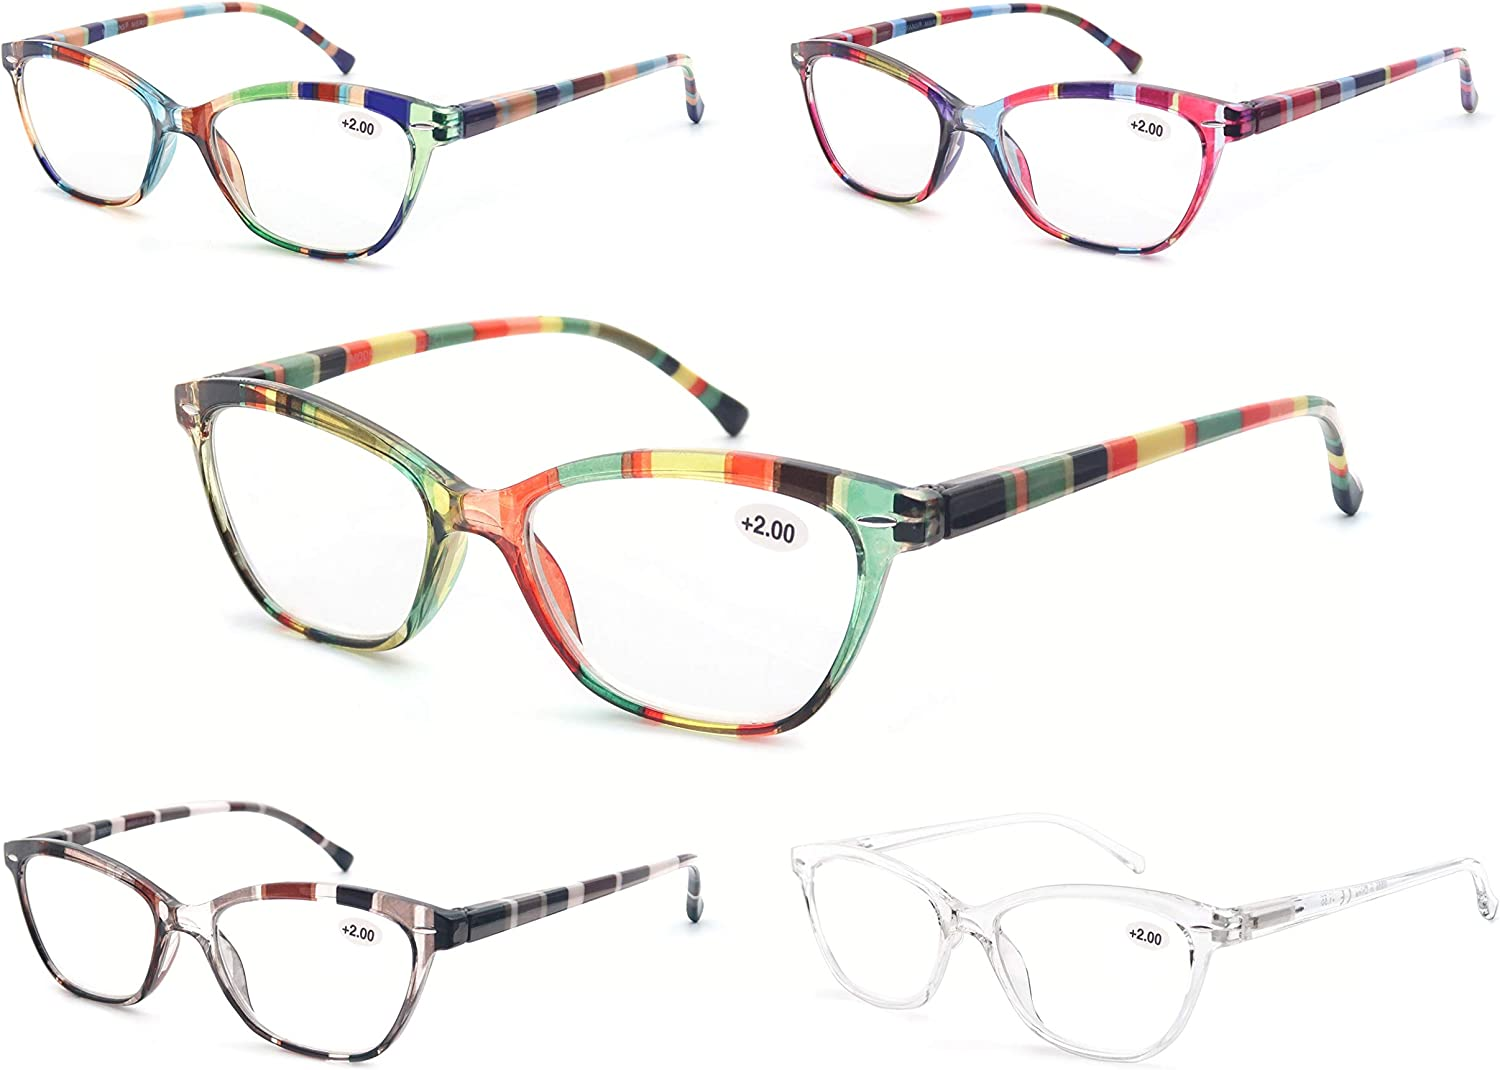 MODFANS Reading Cheap mail order specialty store Glasses Women 4 Pack Max 71% OFF Ladies Readers Spring Hinge